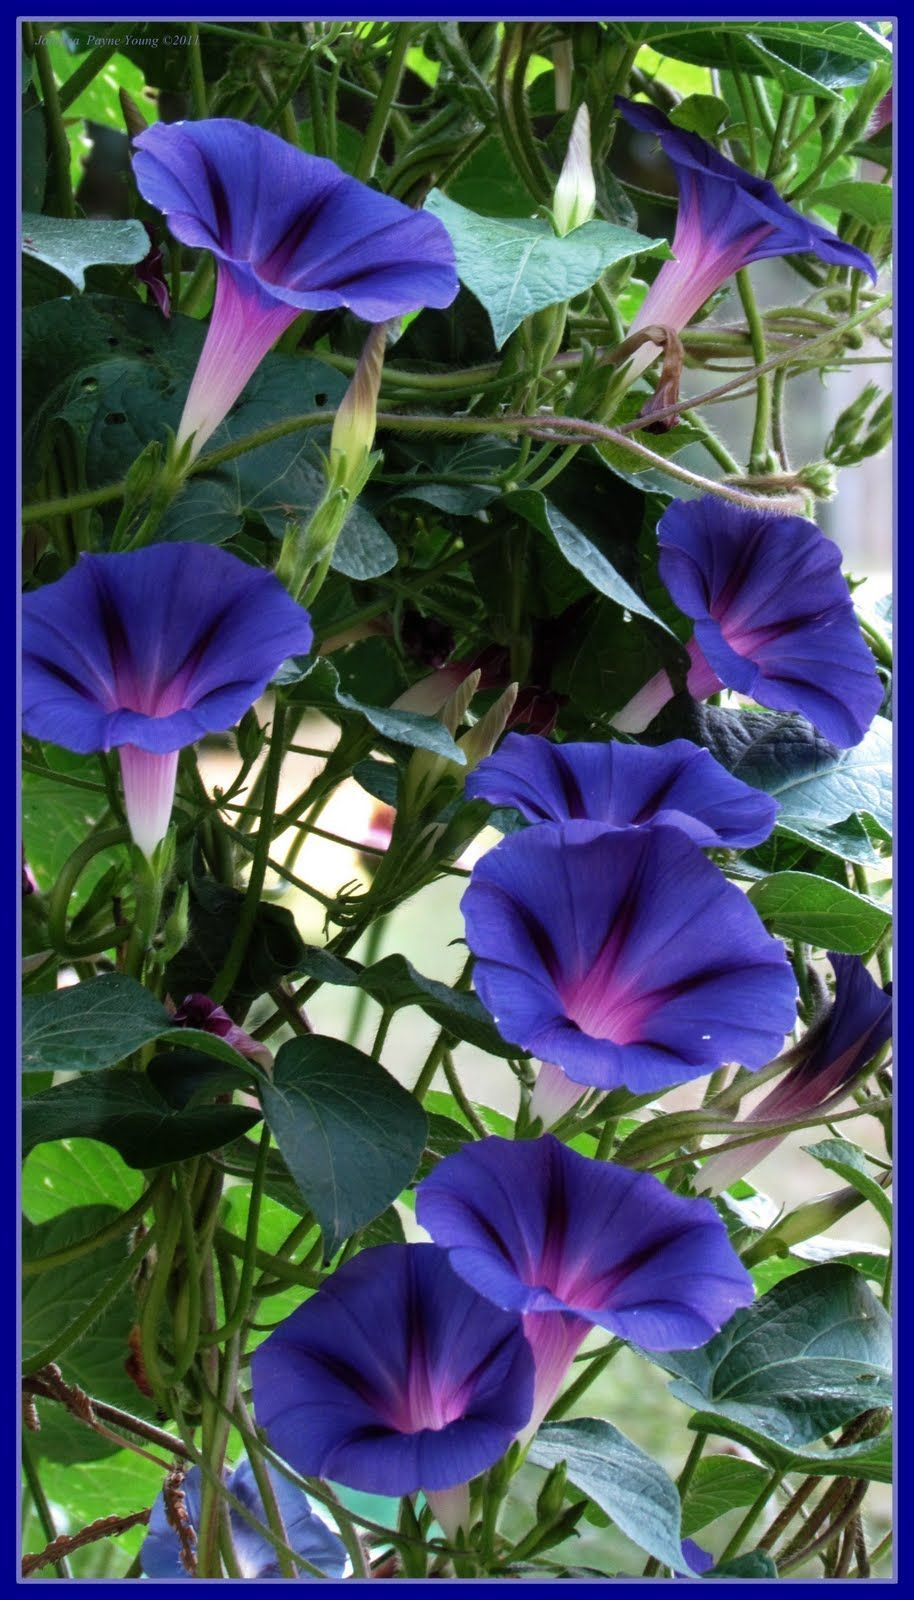 Young Eclectic Encounters Morning Glories Morning Glory Flowers Beautiful Flowers Flower Photos